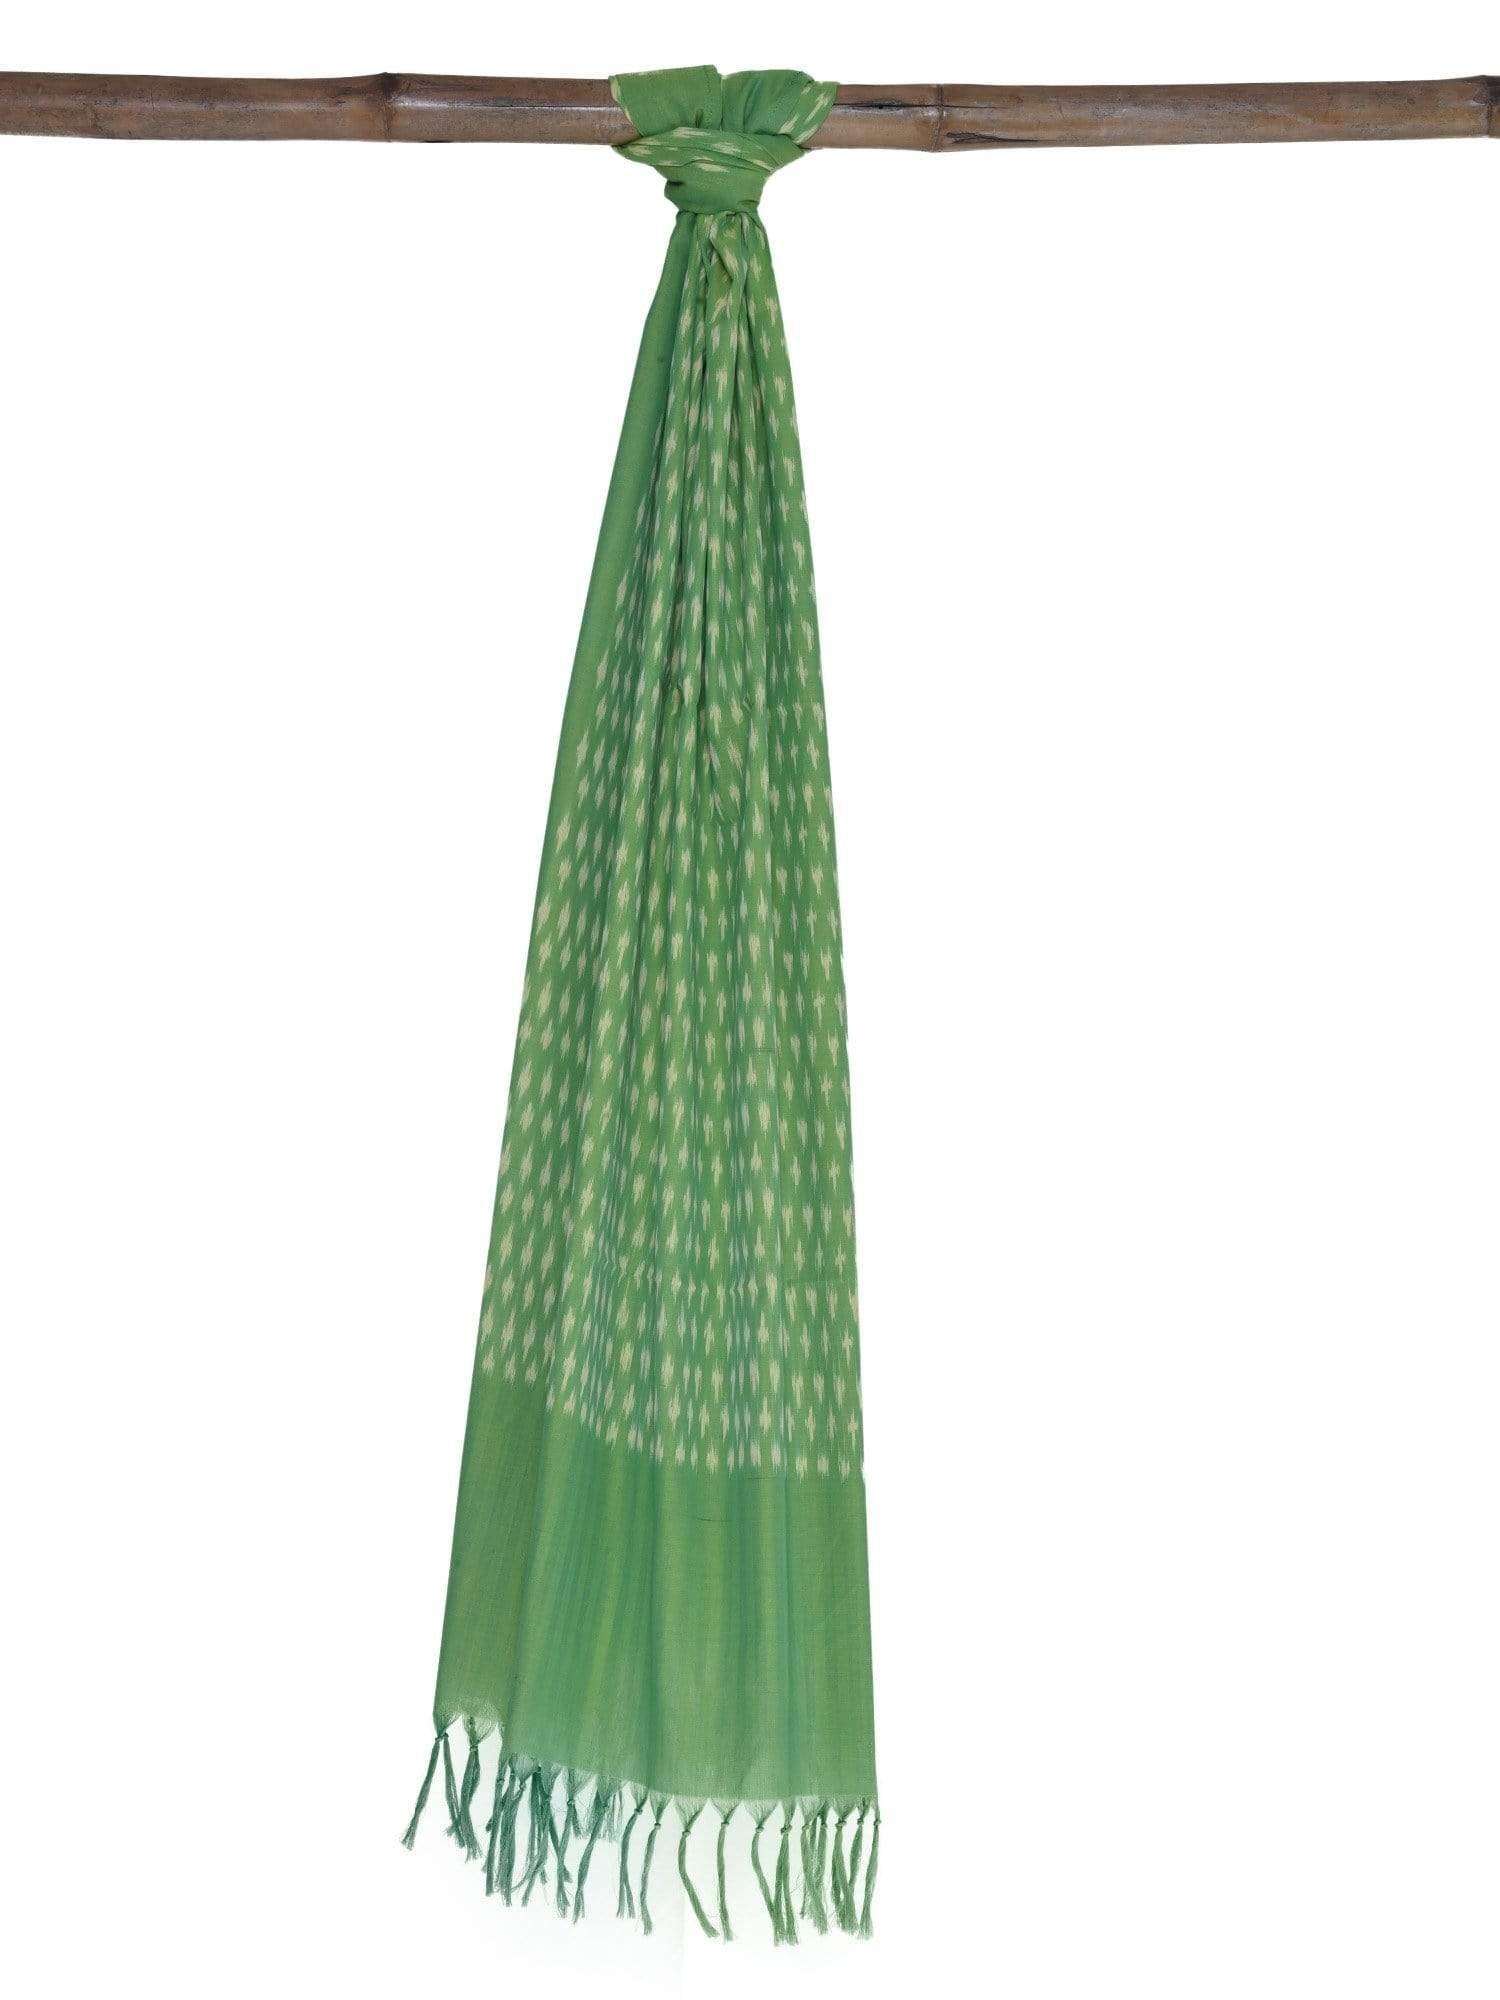 Green Pochampally Ikat Cotton Handloom Stole ds1652